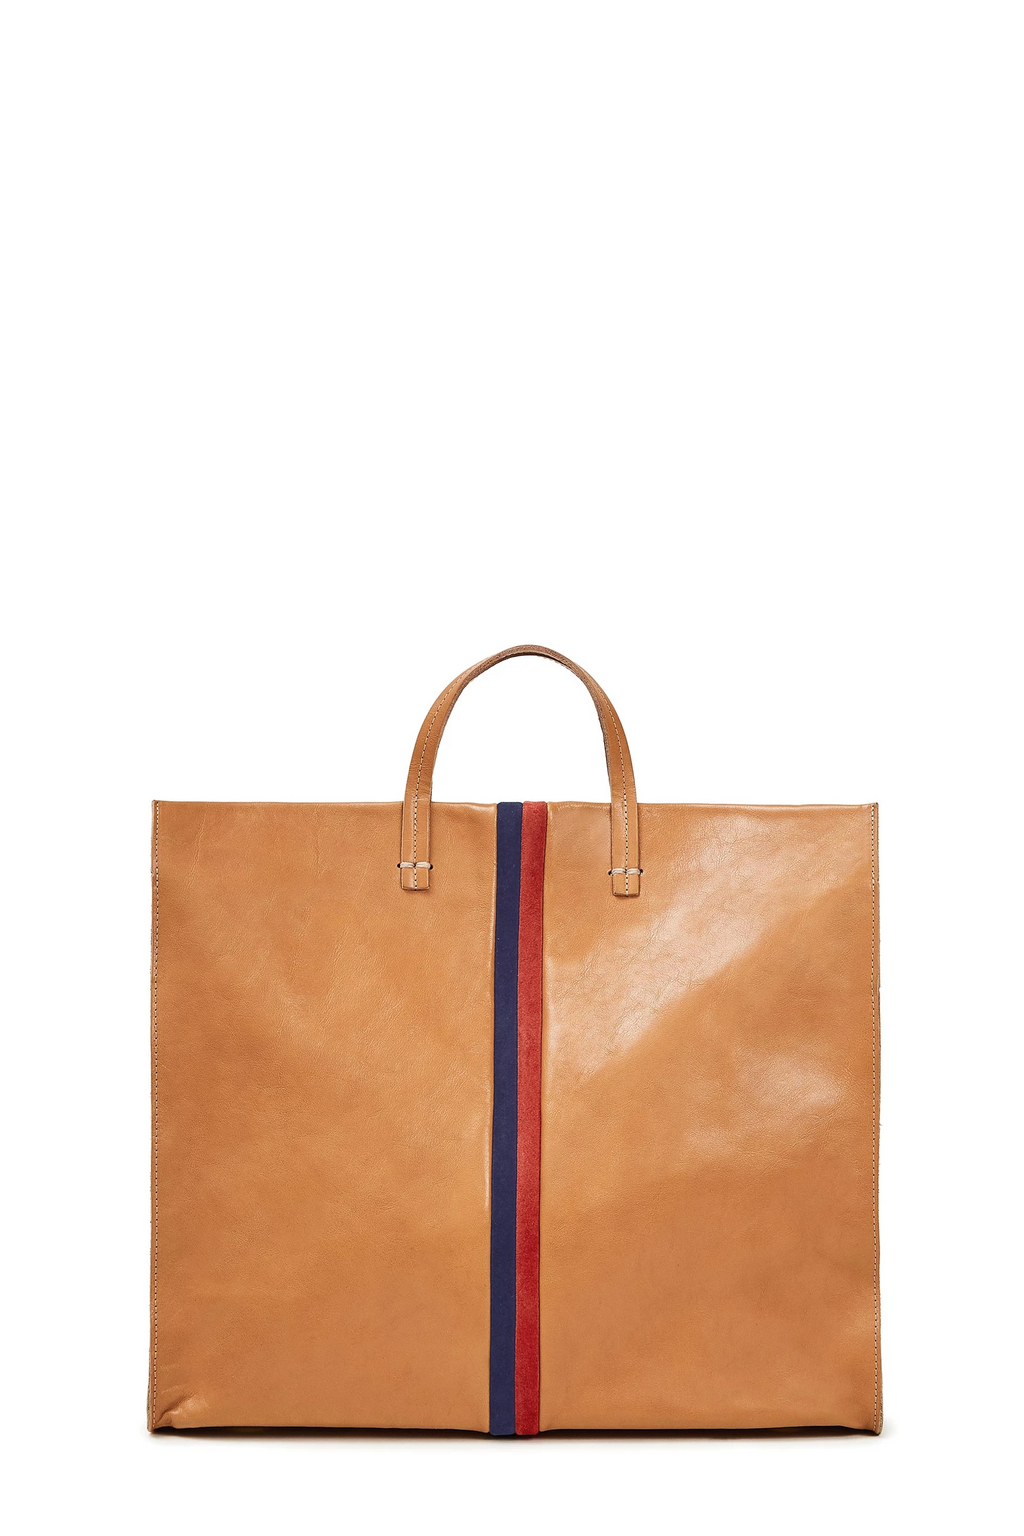 clare v. simple tote natural rustic leather